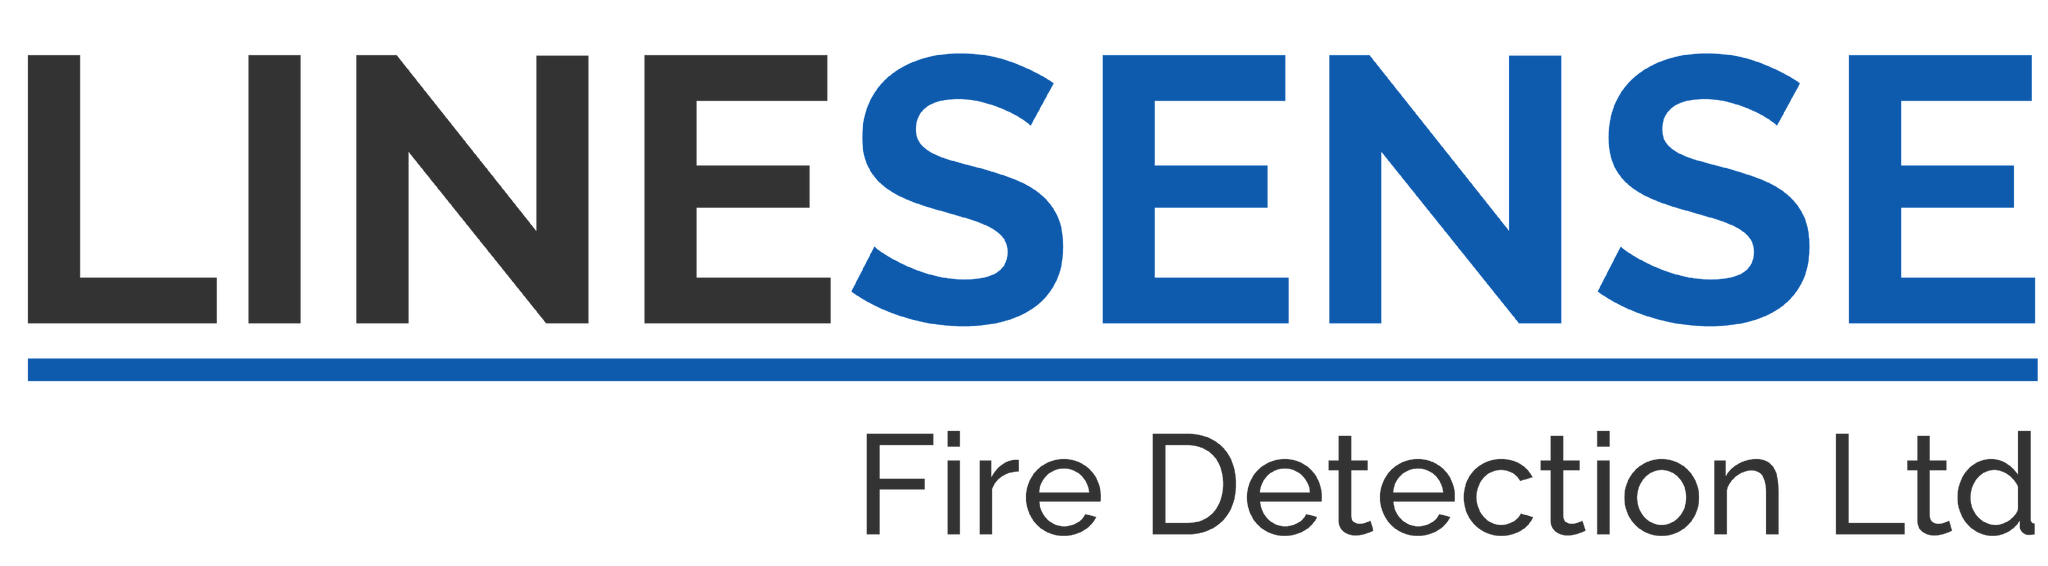 Linesense Fire Detection Limited